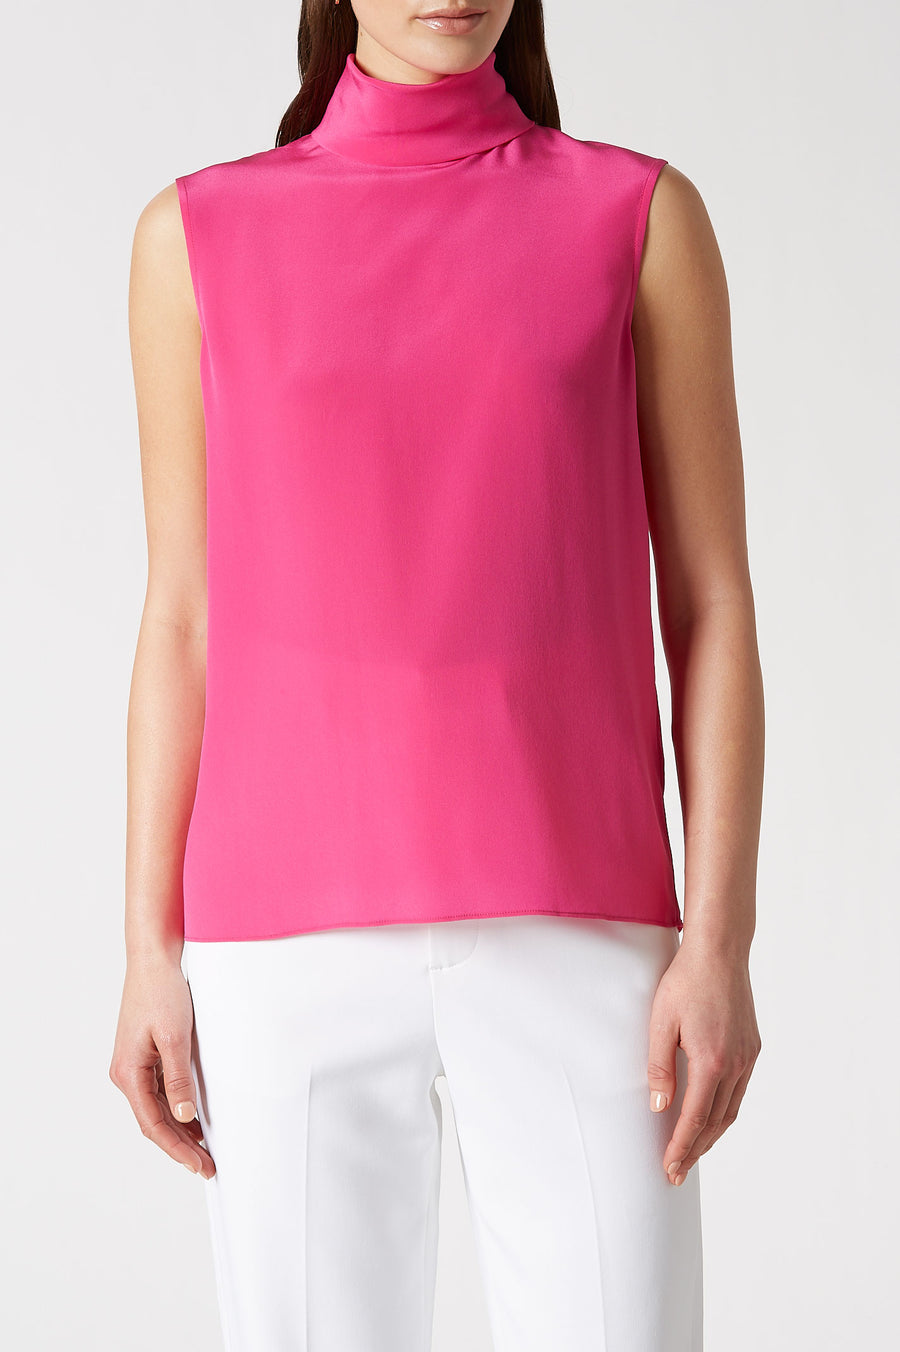 This luxurious silk silhouette is crafted with a soft high neck with a relaxed fit through the body.